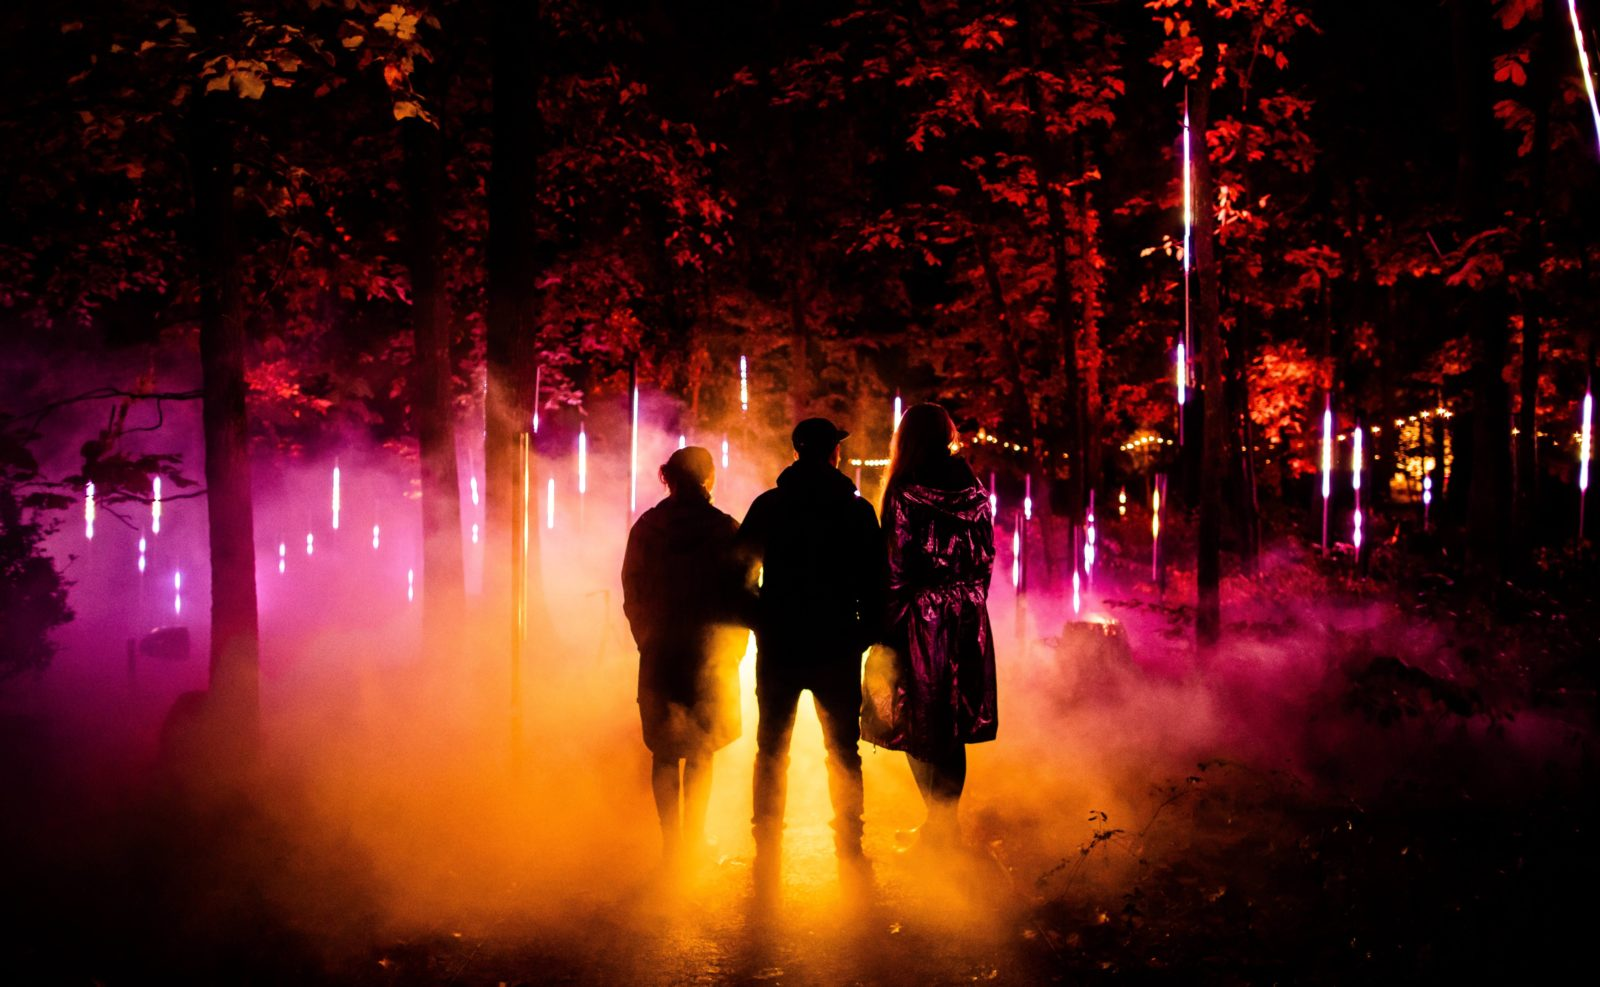 Silhouettes of three people in a forest lit with pink and orange light